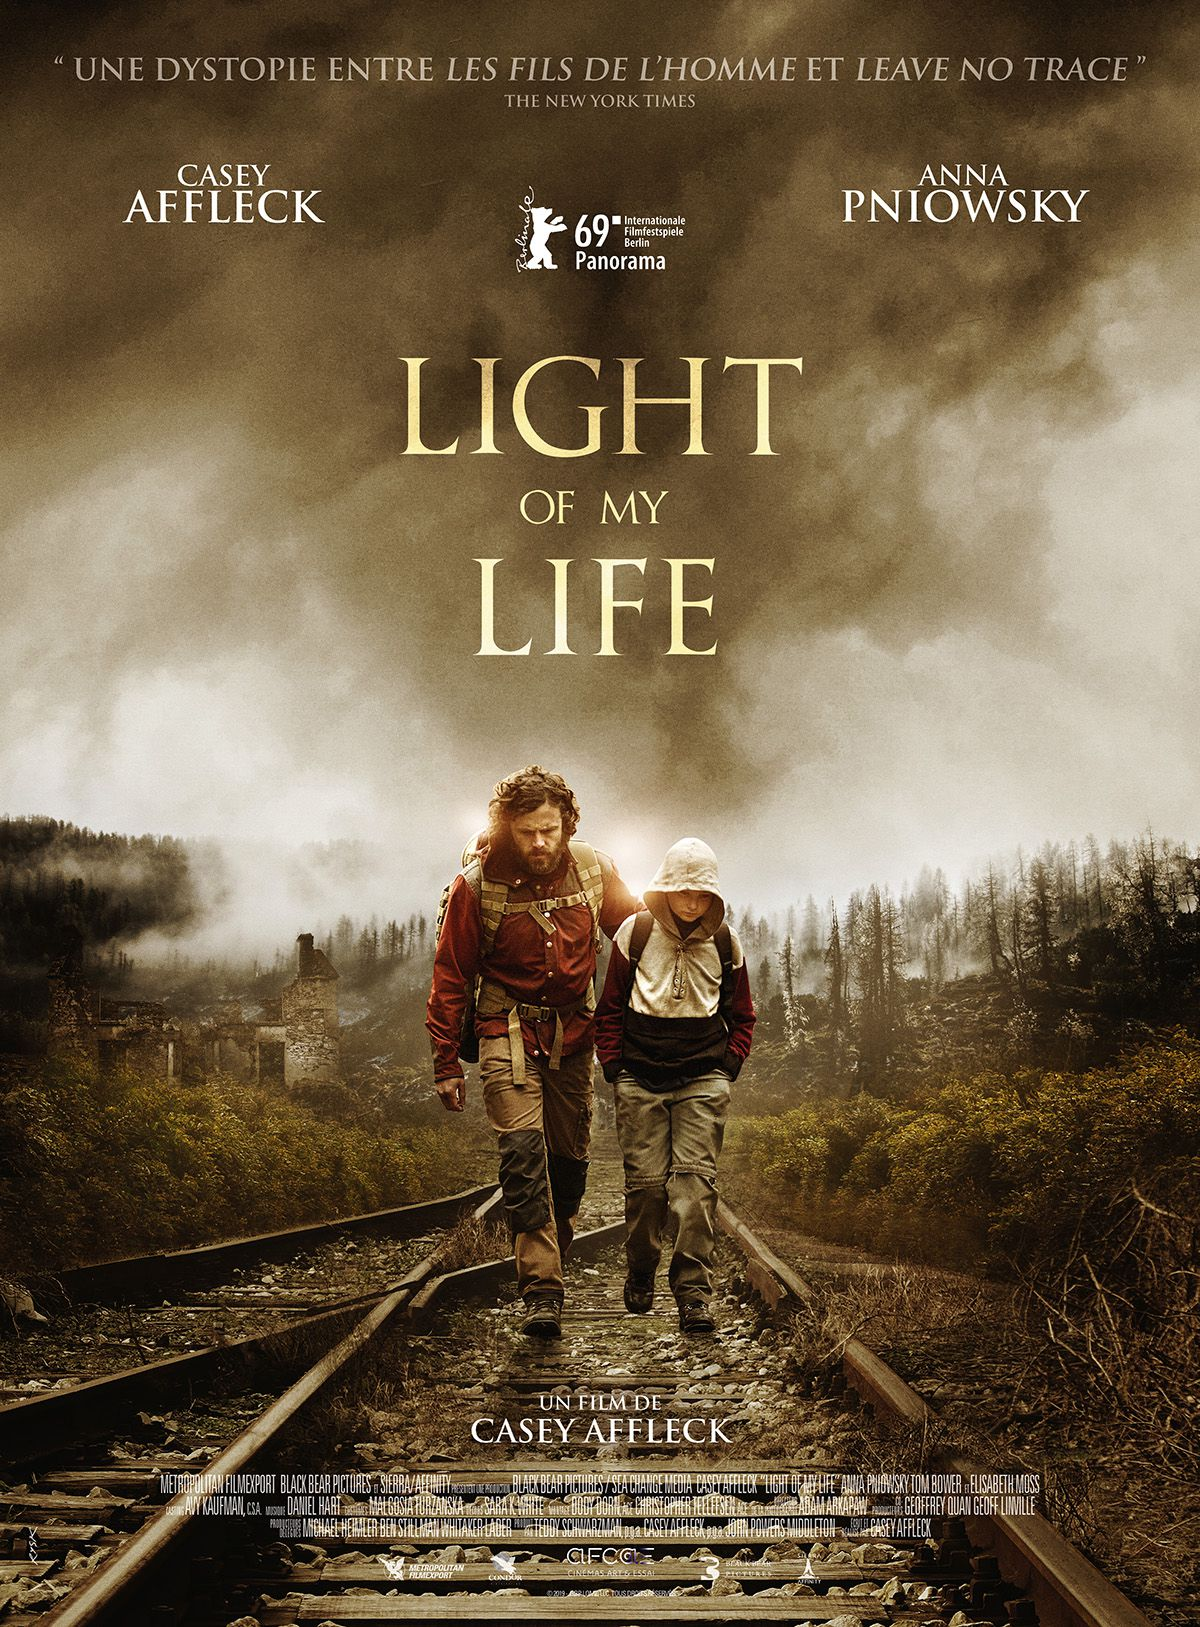 Light of My Life - Film (2020) streaming VF gratuit complet